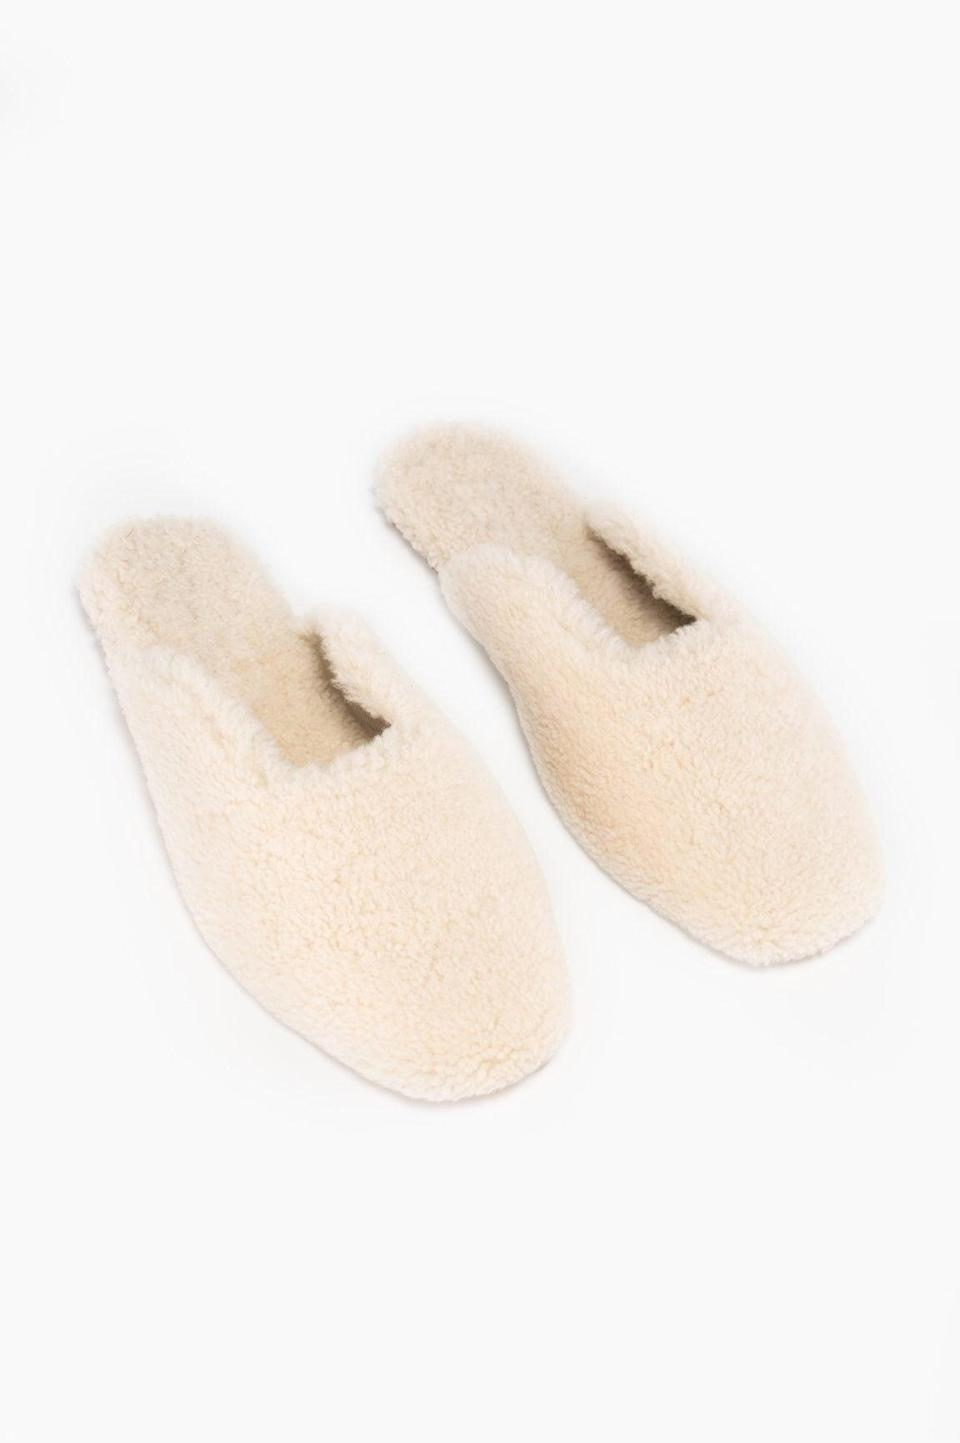 """<p>""""I'm still not over my cozy phase and anyone who knows me knows I'm obsessed with anything fluffy. After searching high and low for new house slippers, I couldn't help but fall in love with <span>Sleeper's Cream Shearling pair</span> ($290). They're cozy and chic, so what else is there to ask for?"""" - Krista Jones, associate editor, Shop</p>"""